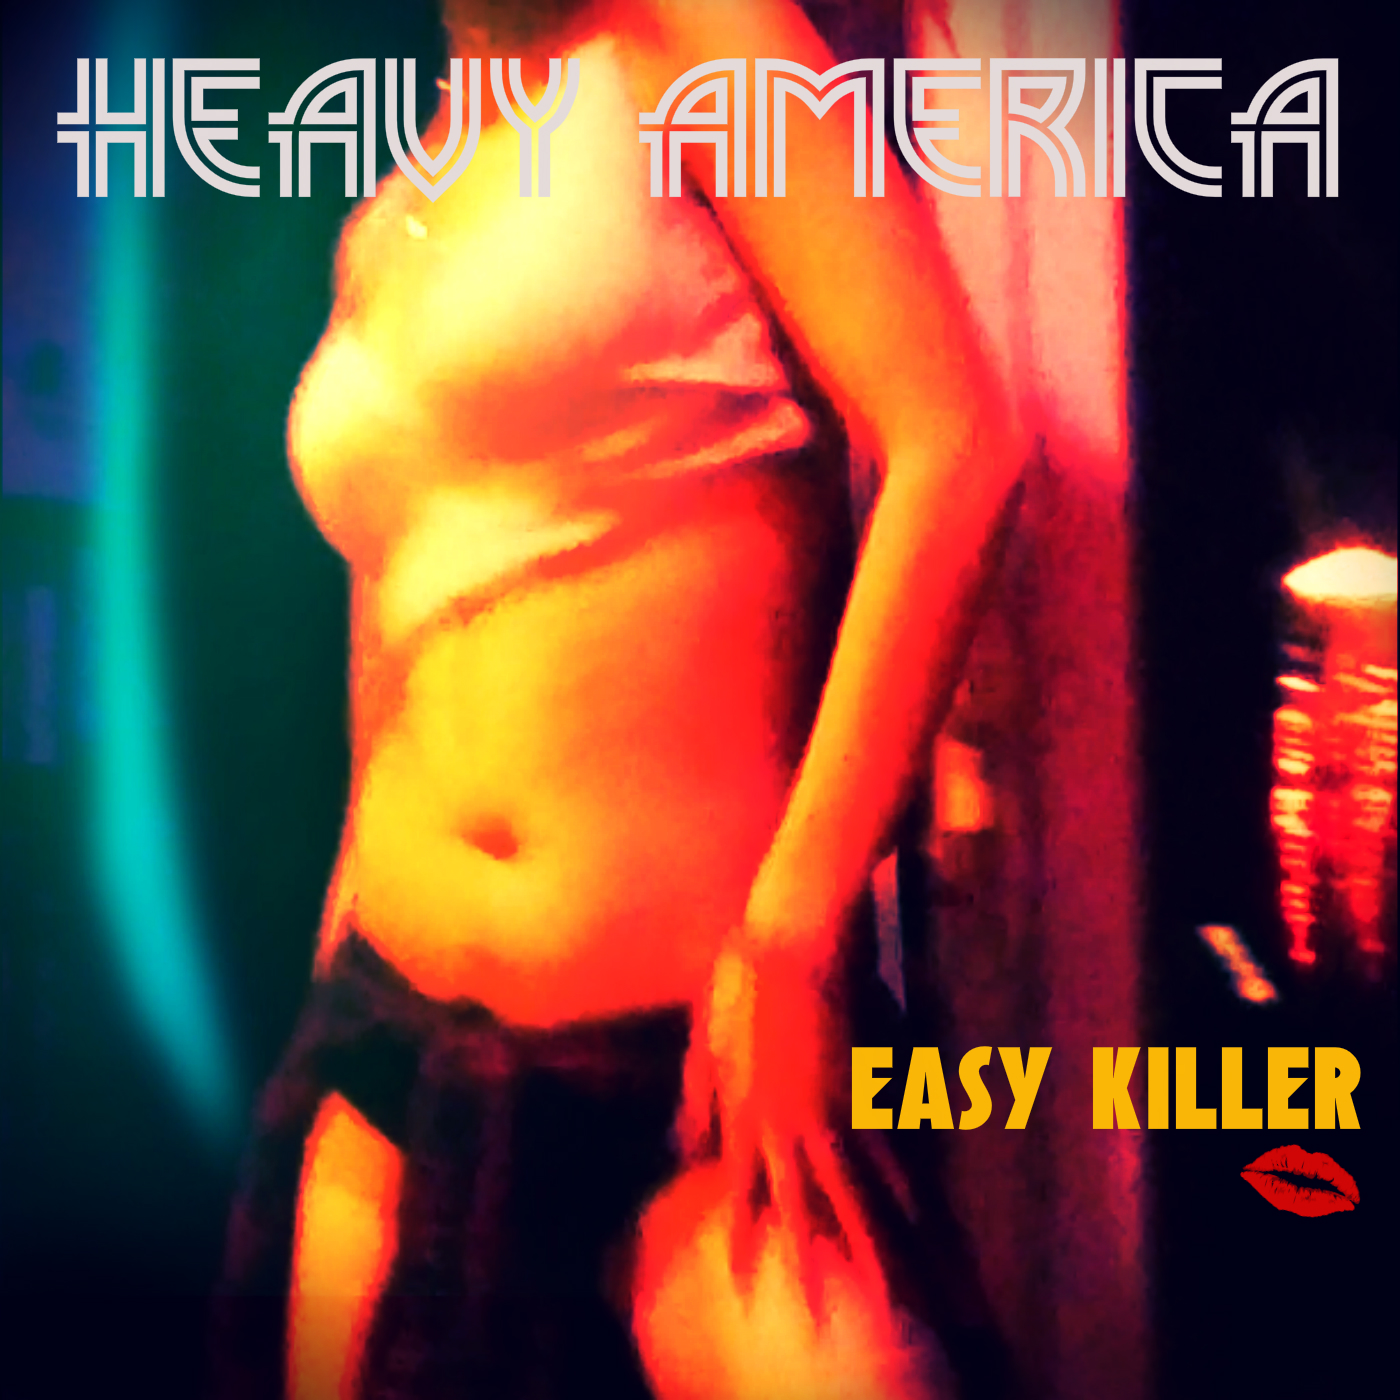 Heavy AmericA-Easy Killer-Single-Art.jpg